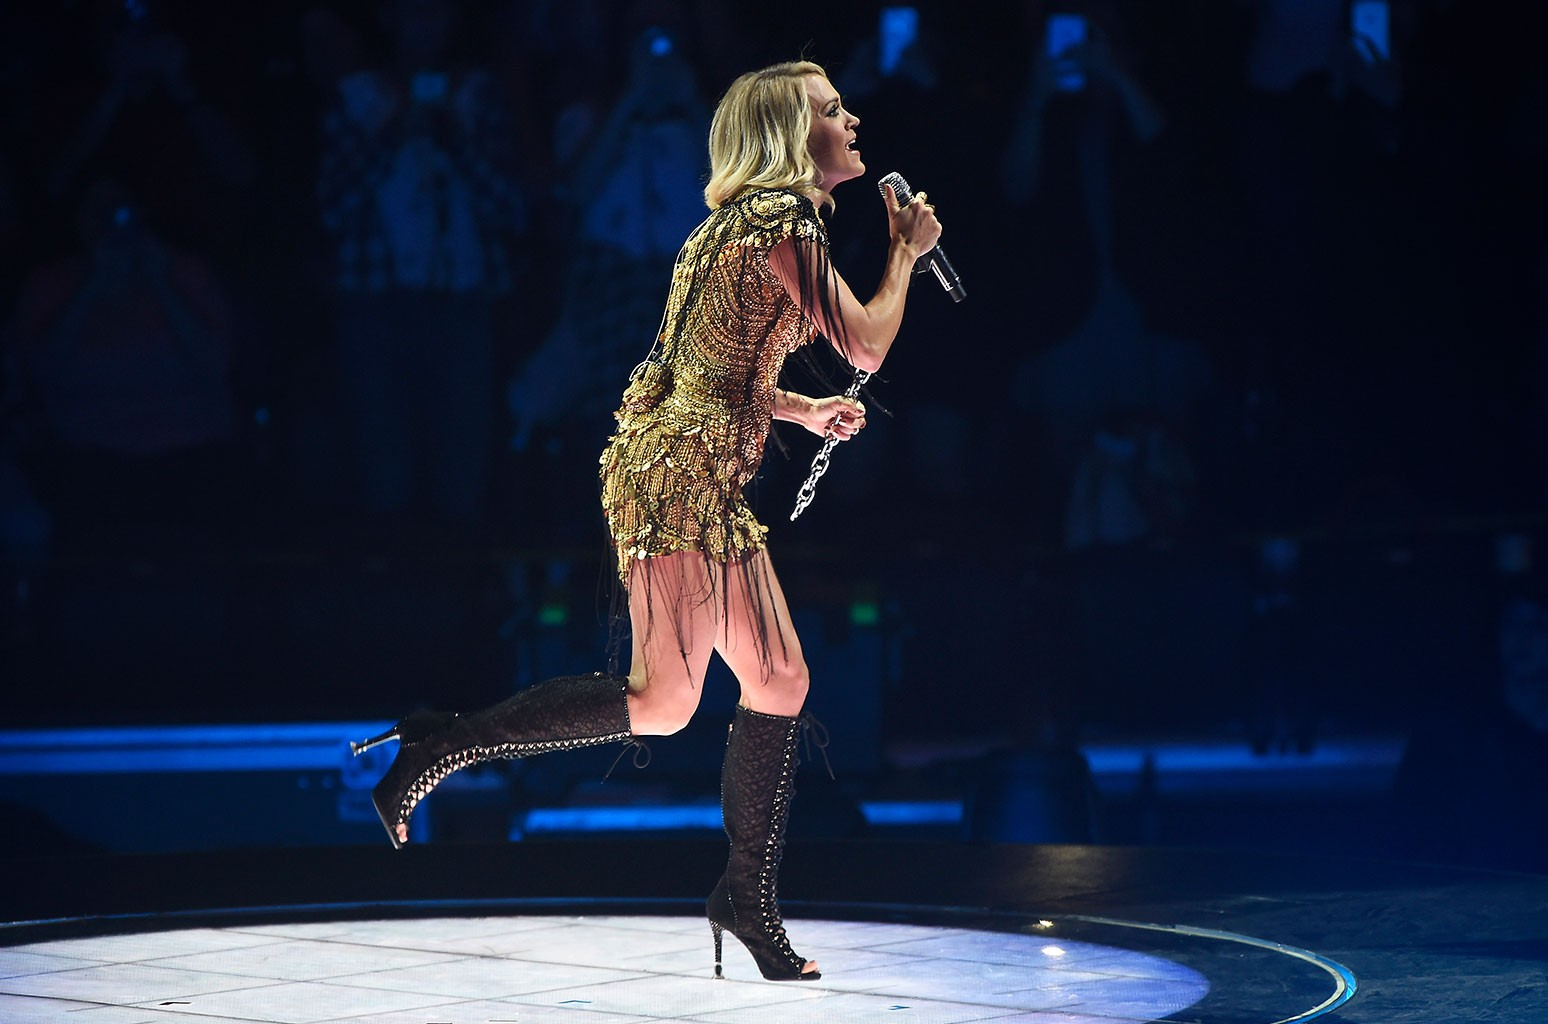 Carrie Underwood performs inside the Mohegan Sun Arena as part of the property's month-long 20th Anniversary celebration on Oct. 28, 2016, in Uncasville, CT.